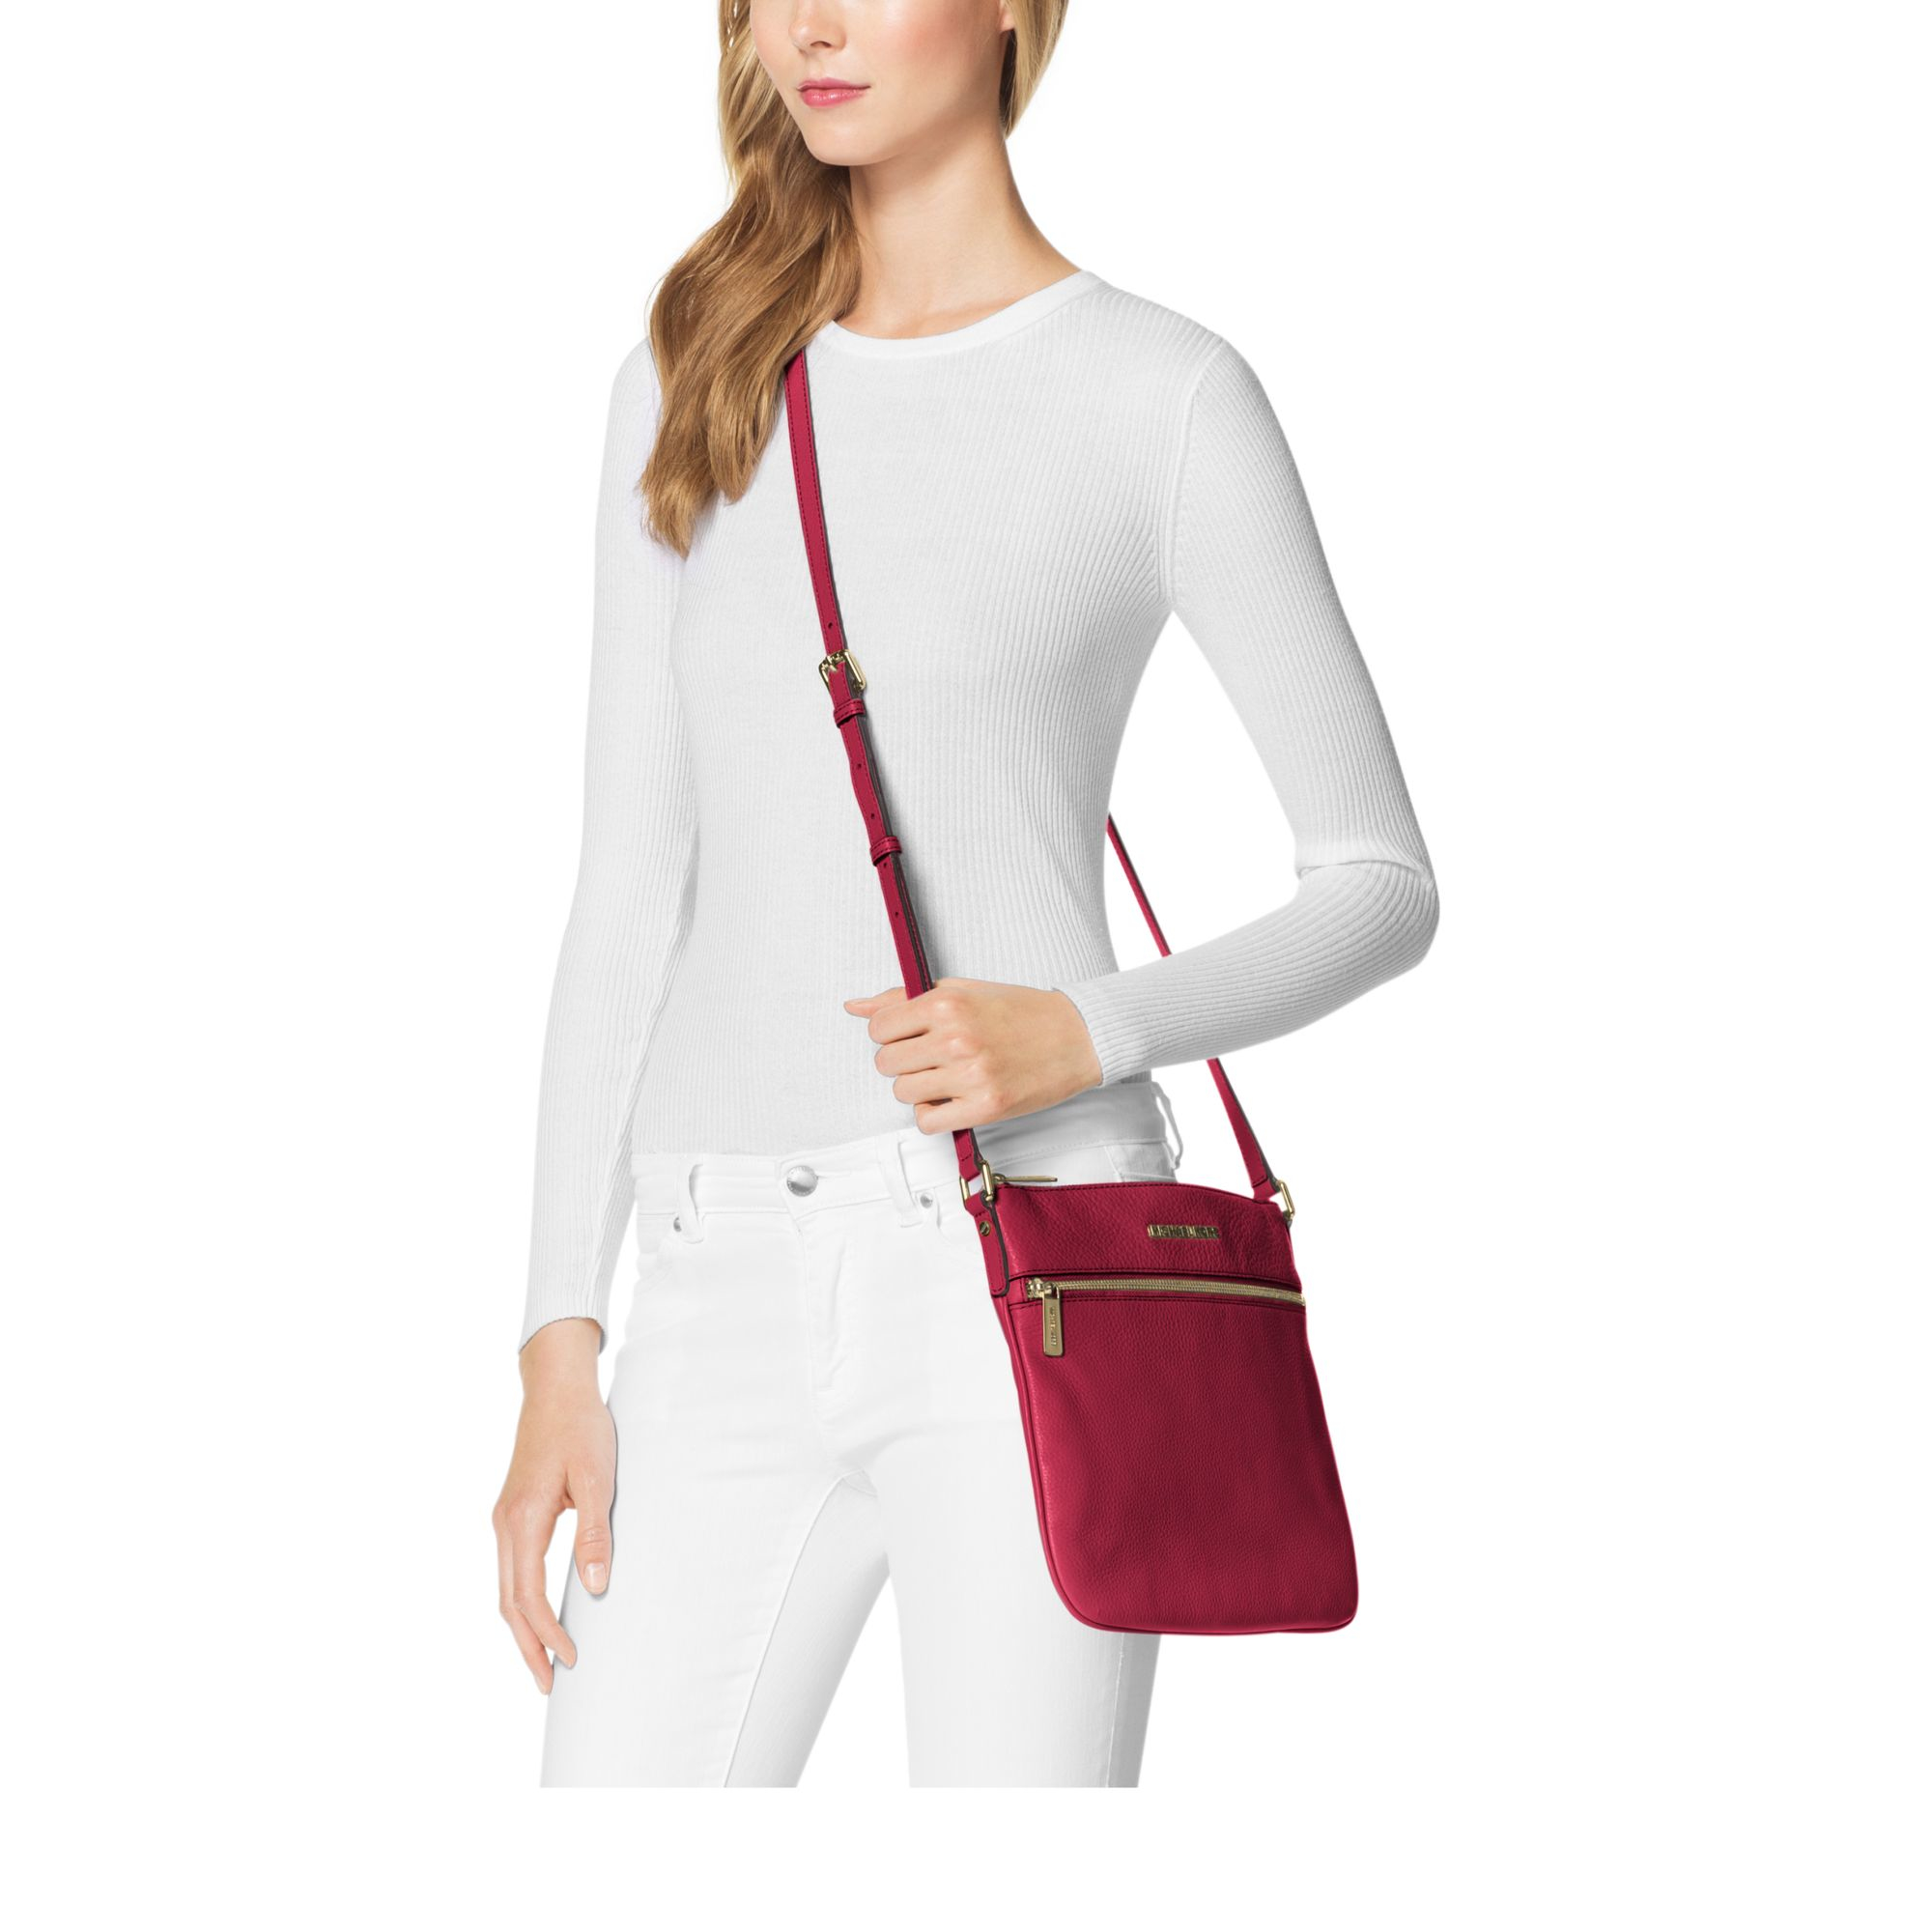 339ec777b6529 ... promo code for lyst michael kors bedford leather crossbody in red 23a3c  65dd6